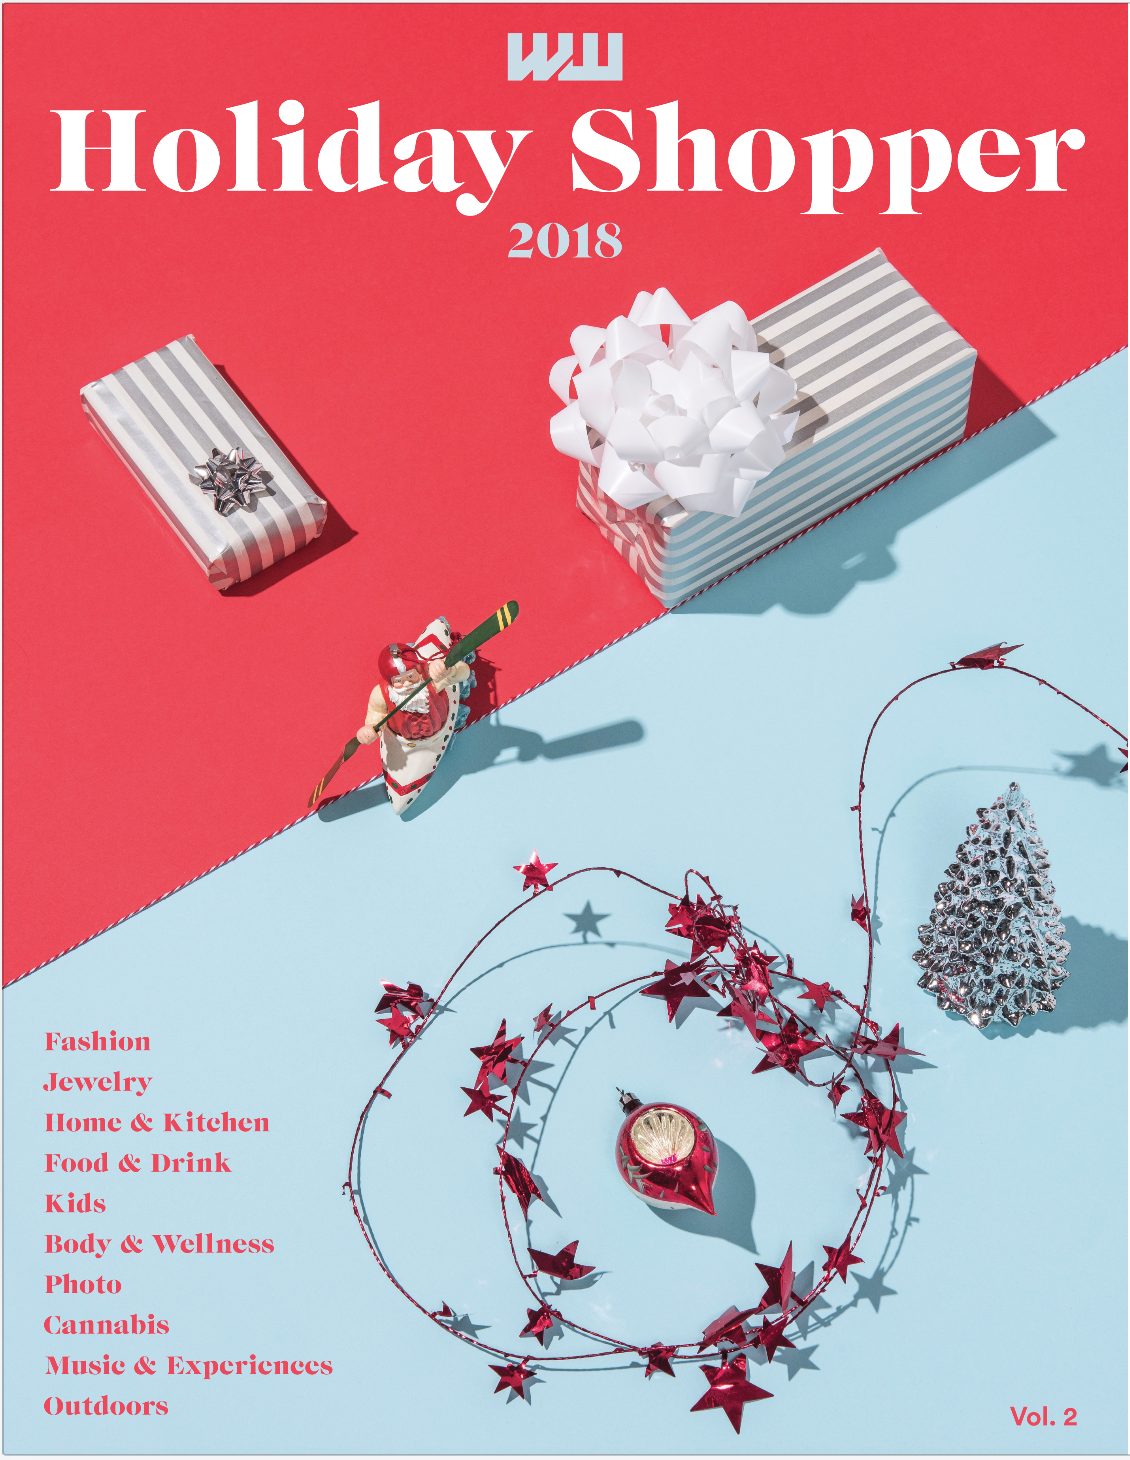 HOLIDAY SHOPPER #2 - Product-based gift pages across a wide range of consumer categories, our annual shoppers are some of our most used issues of the year.